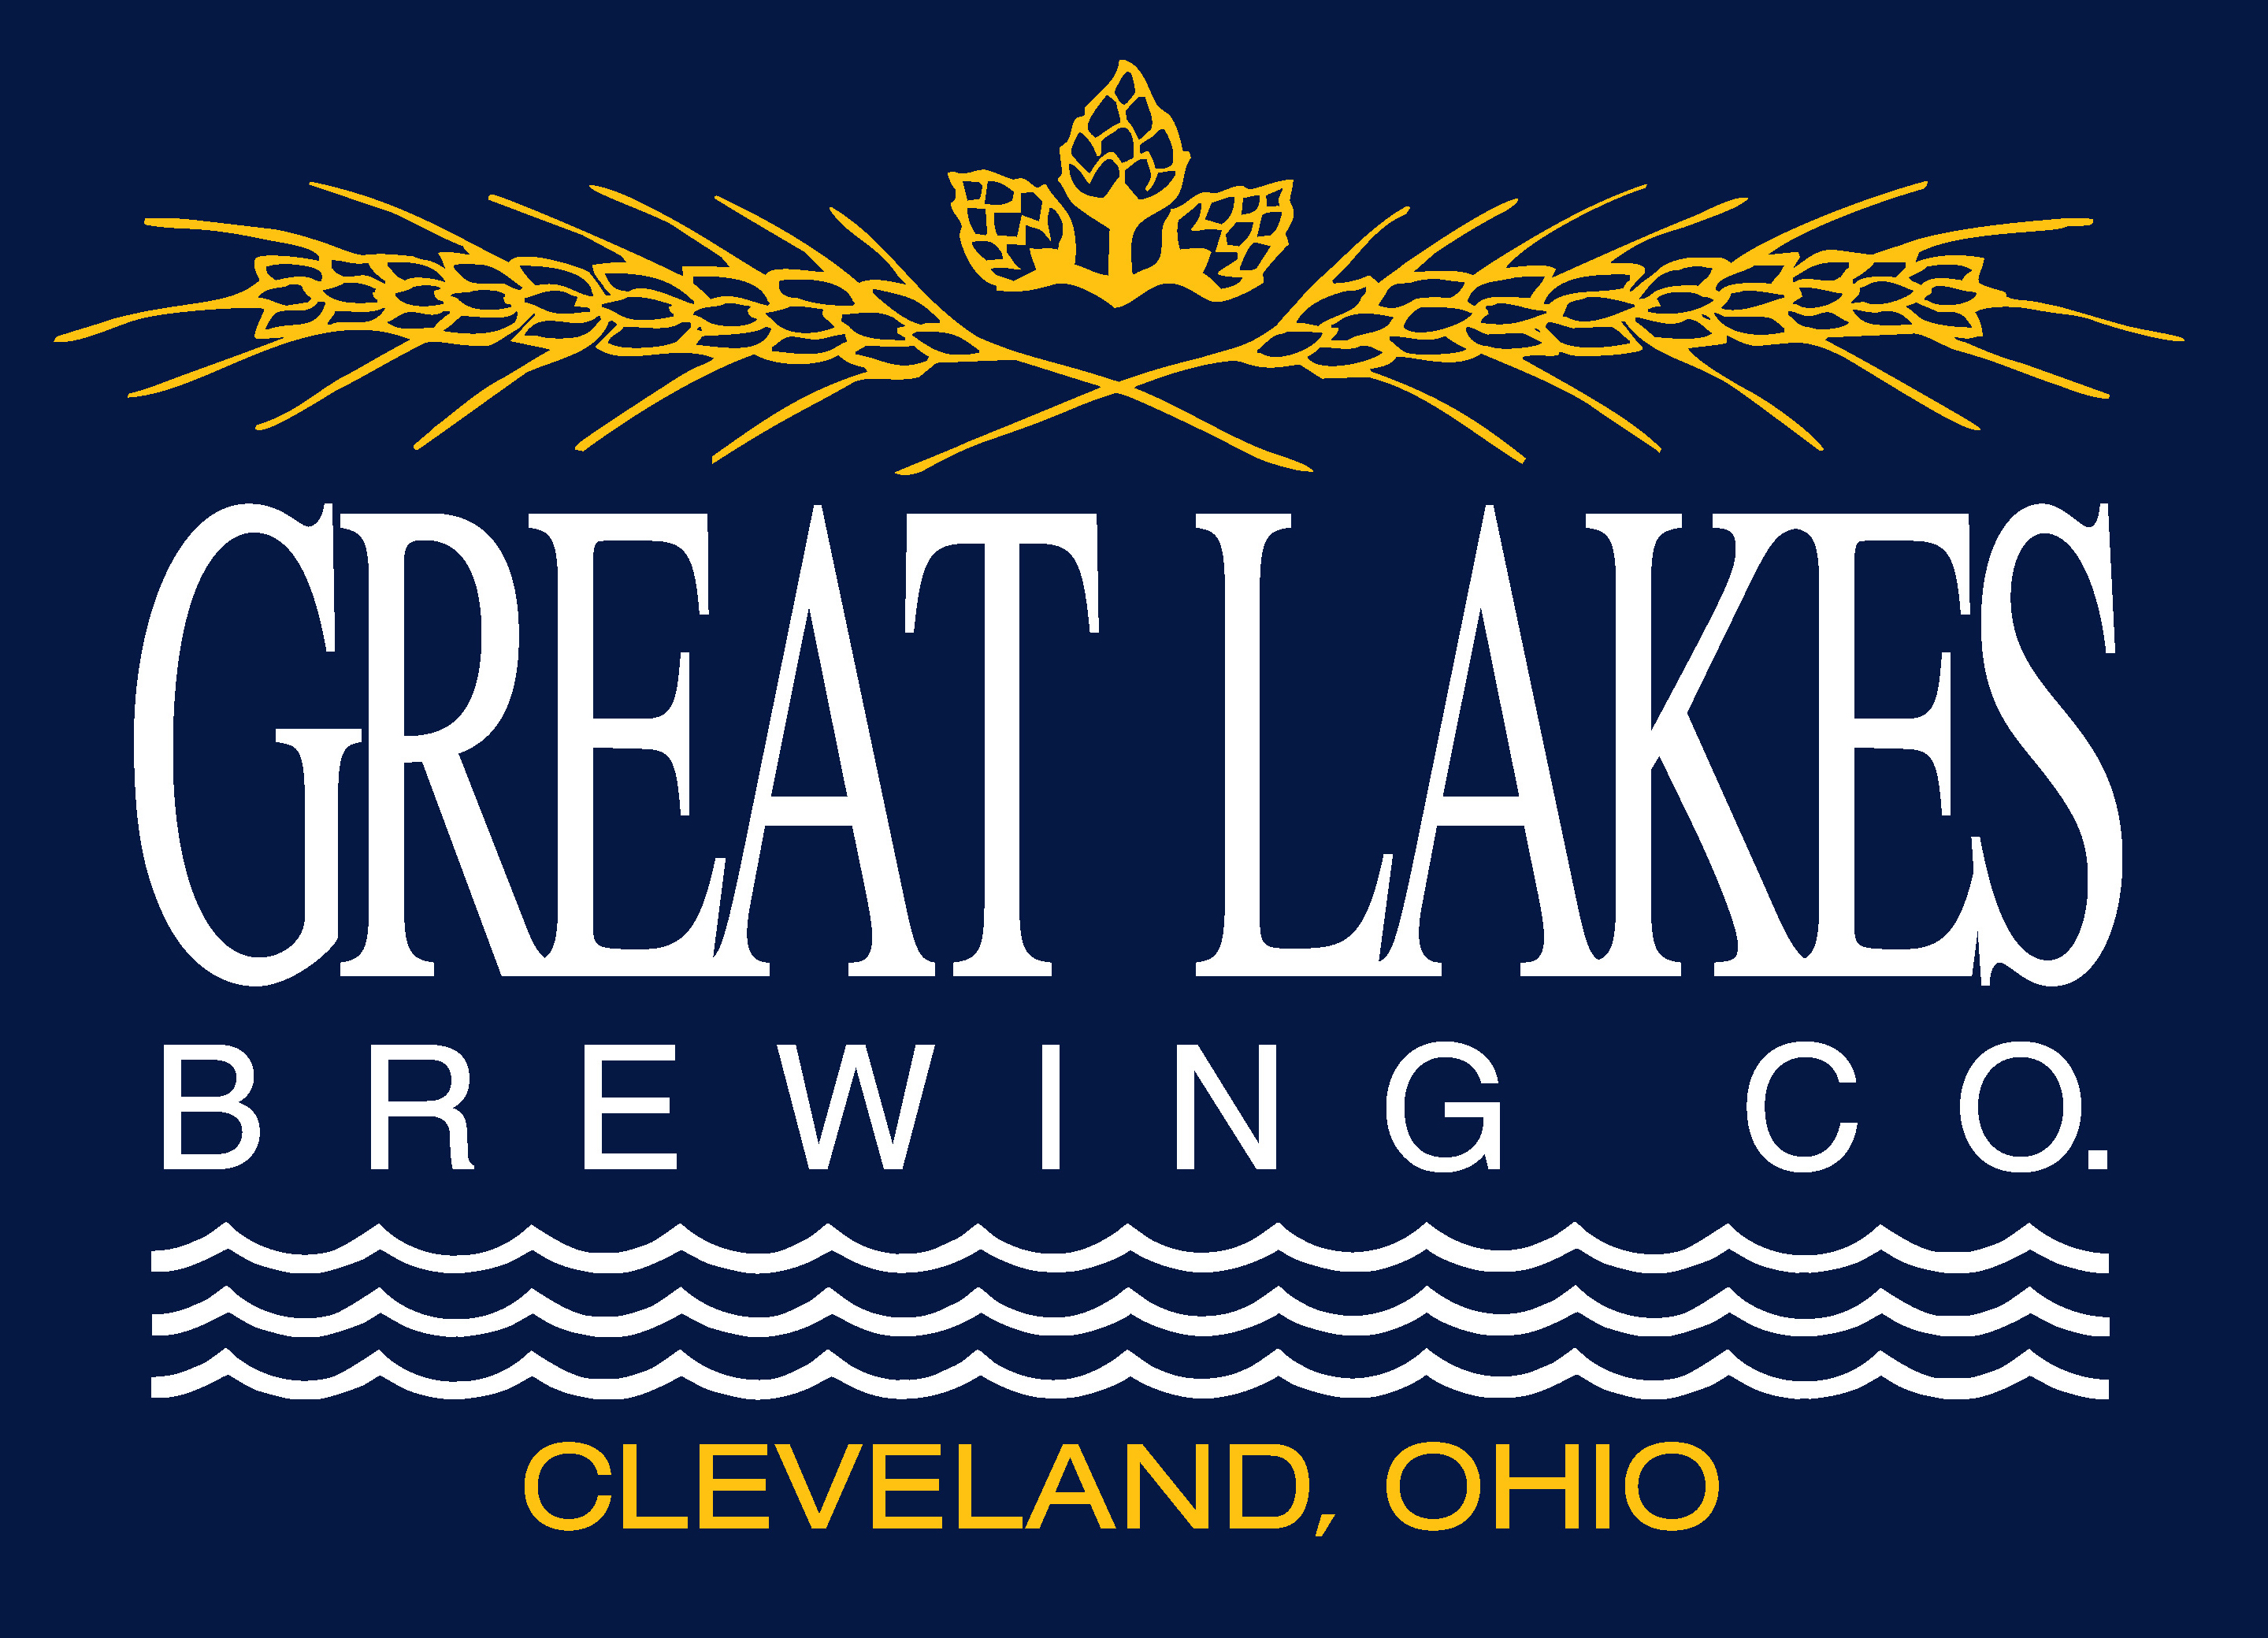 http://beerstreetjournal.com/wp-content/uploads/Great-Lakes-Brewery-Logo.jpg